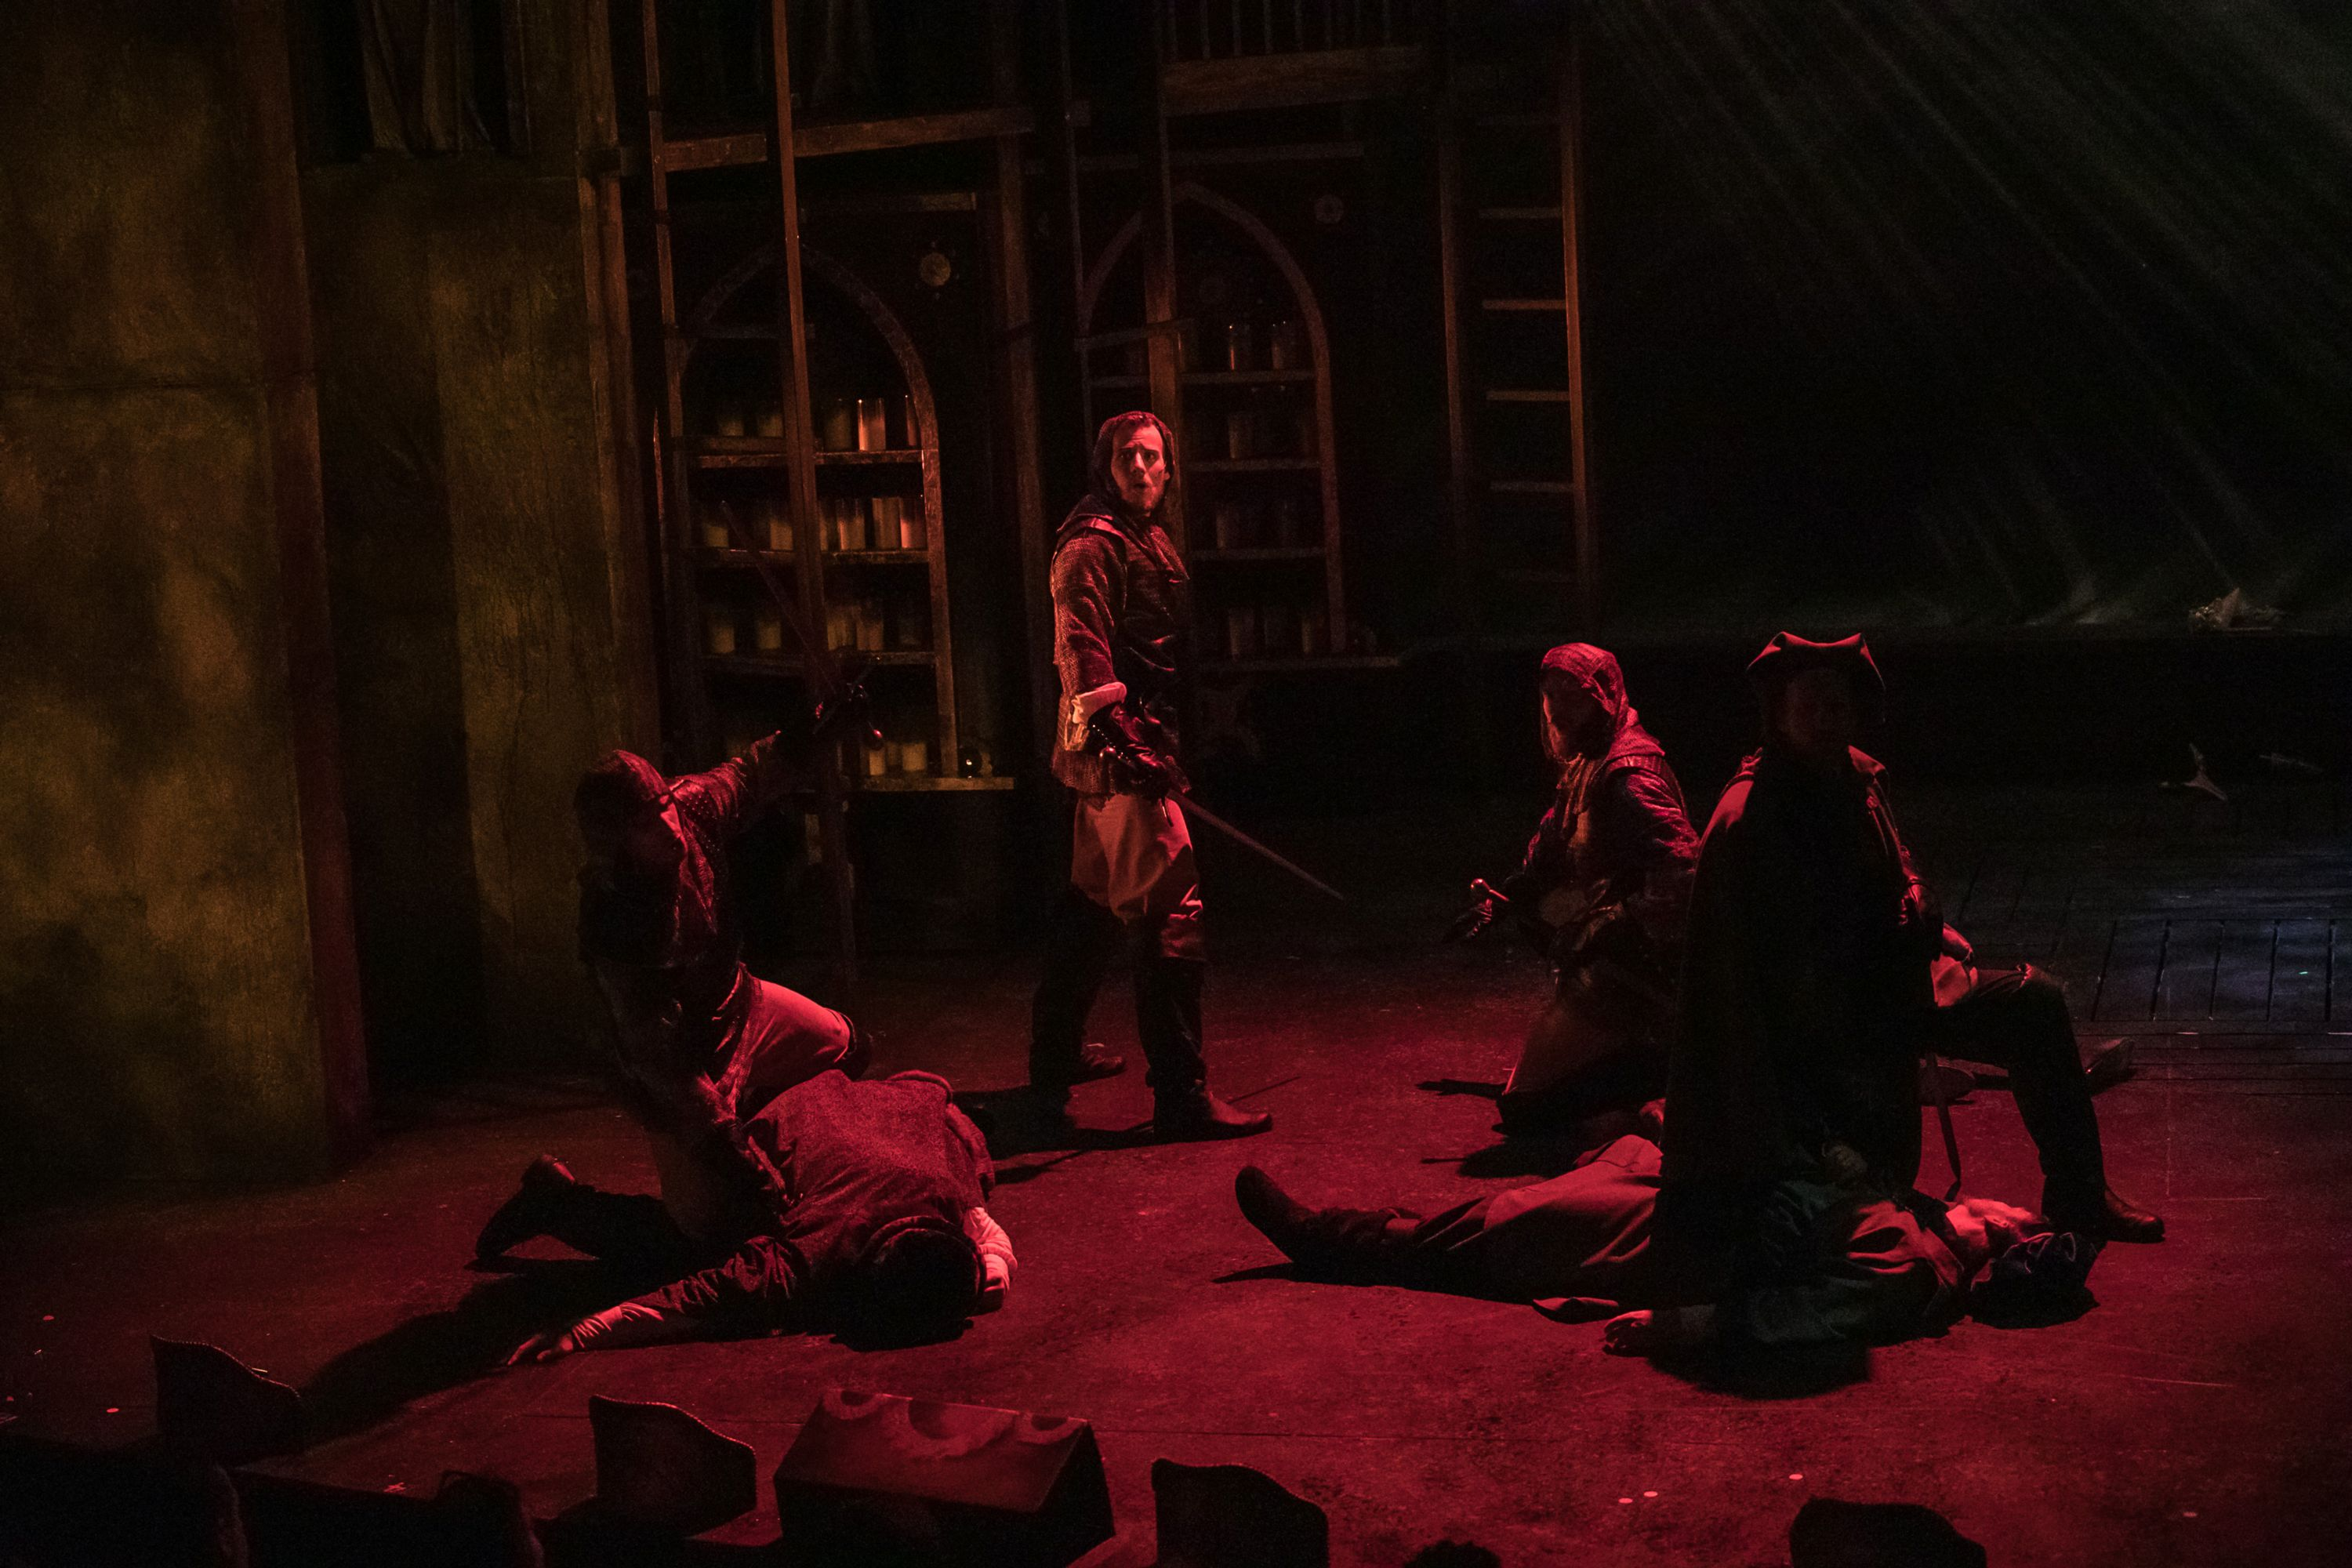 Ben Strickland in The Aurora Theatre's Production of The Hunchback of Notre Dame